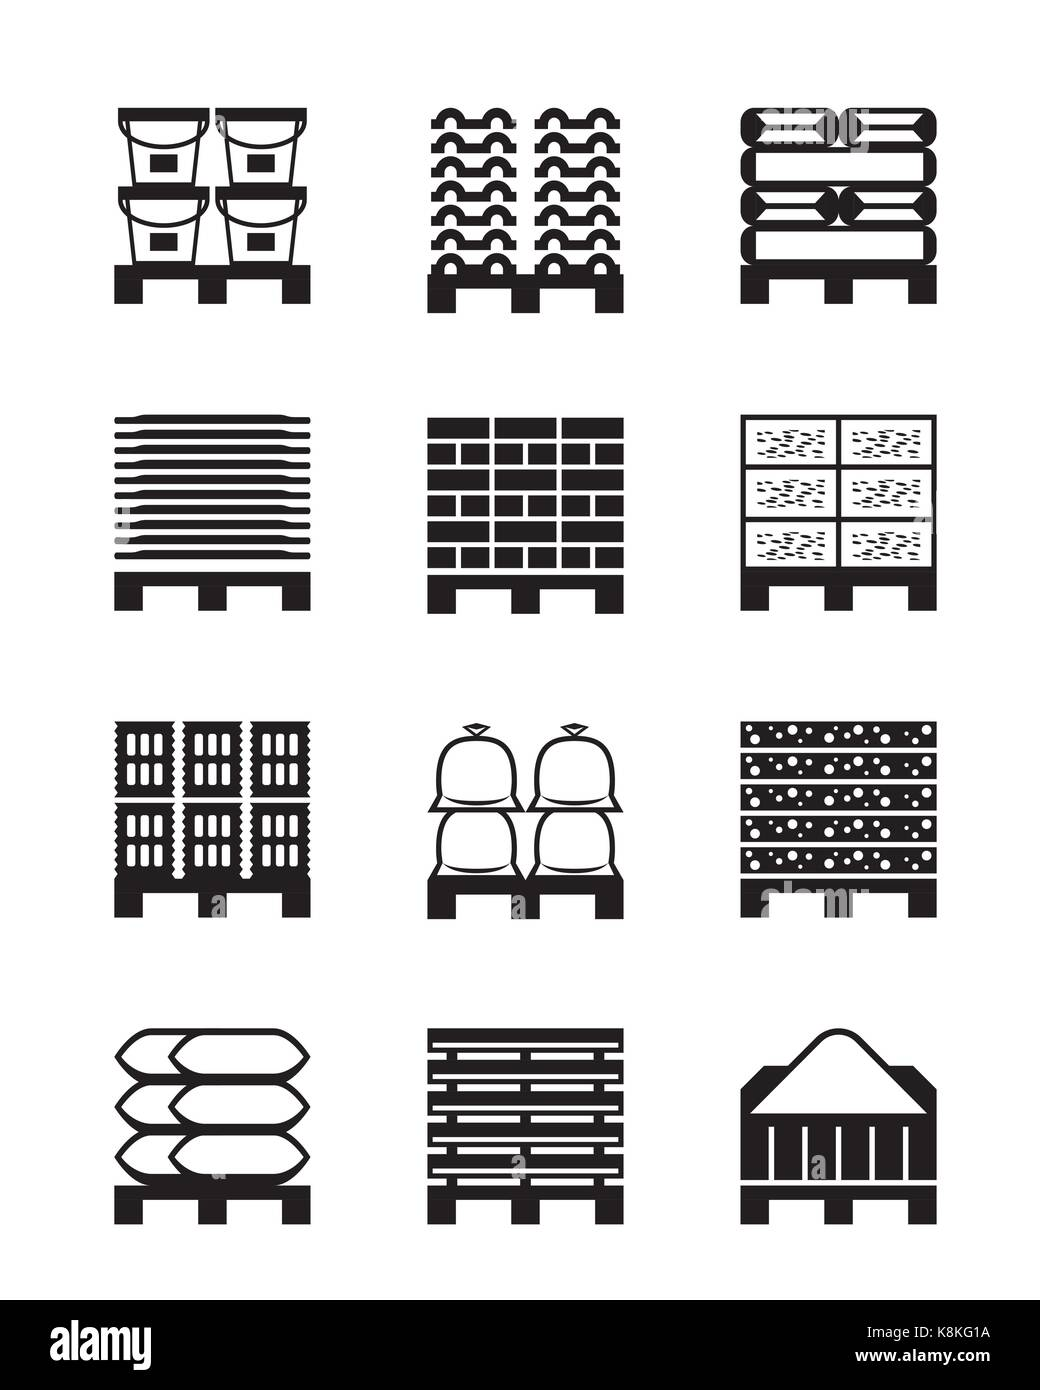 Pallets with different building materials - vector illustration - Stock Vector